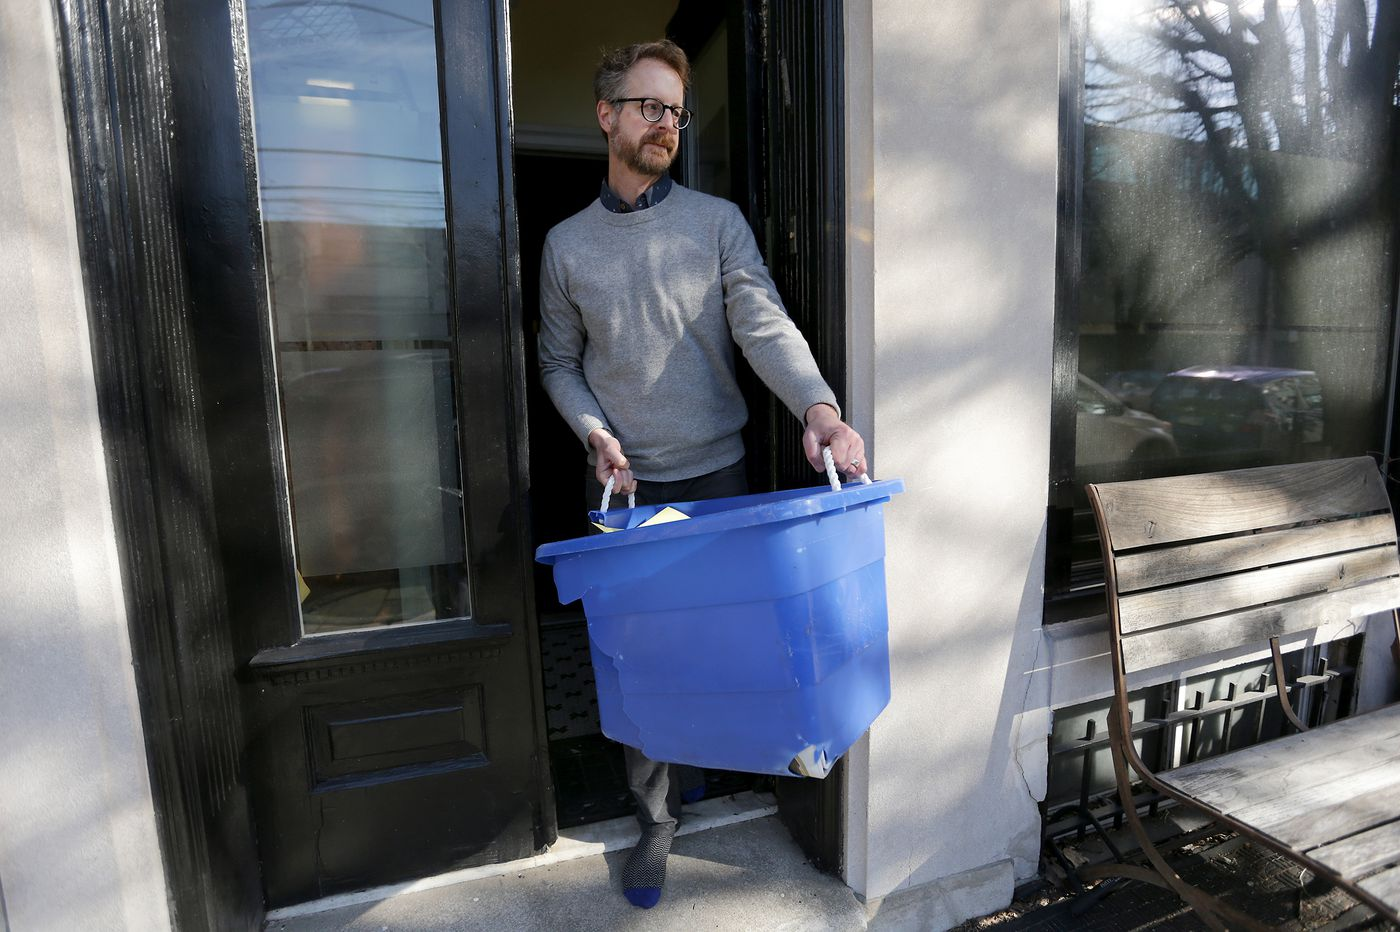 The frustrating charade of recycling in Philadelphia | Opinion